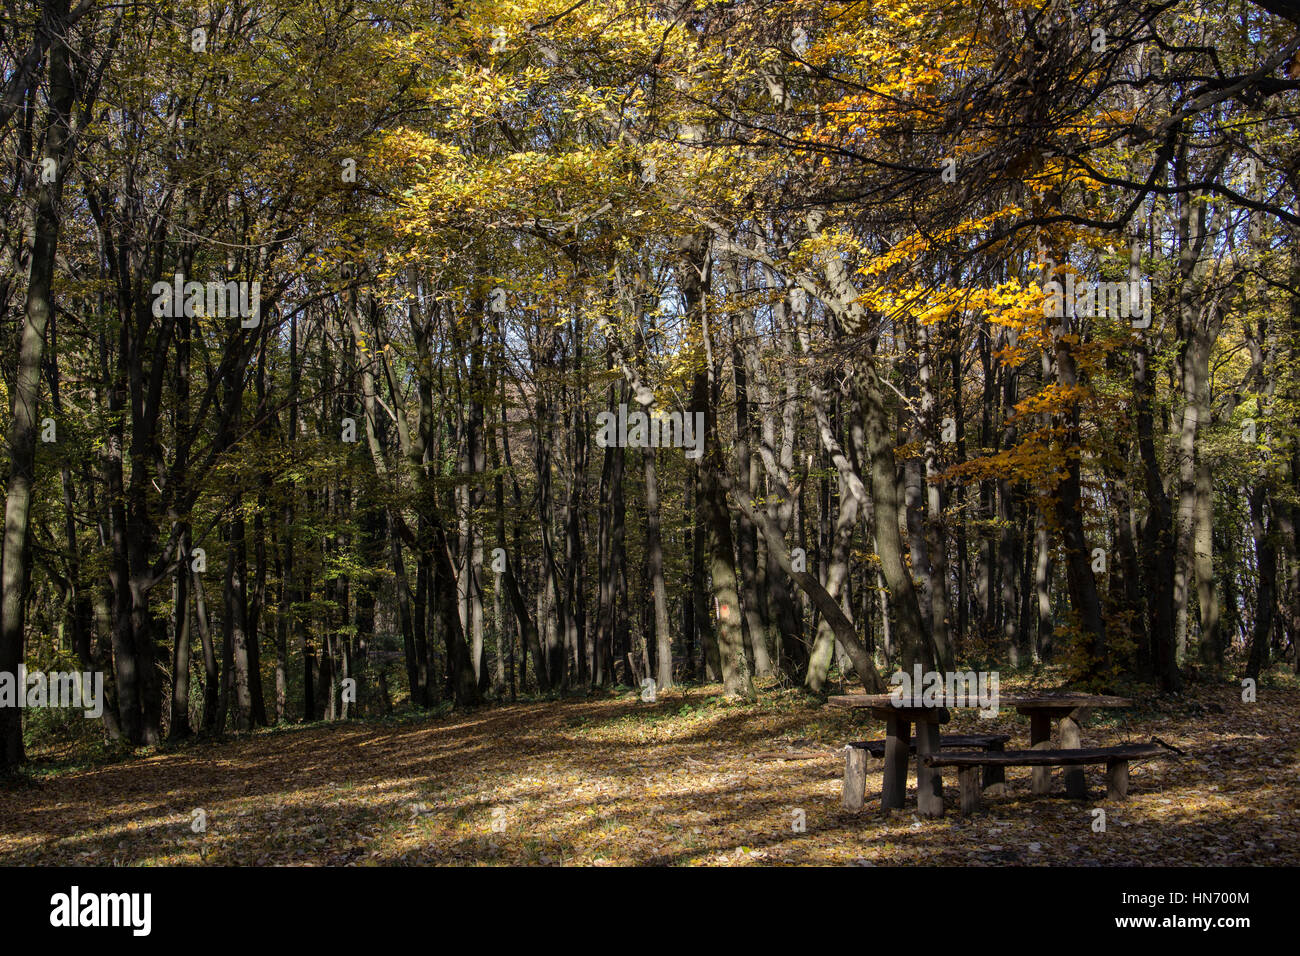 Outing Spot In A Forest In The Sunny Fall - Stock Image